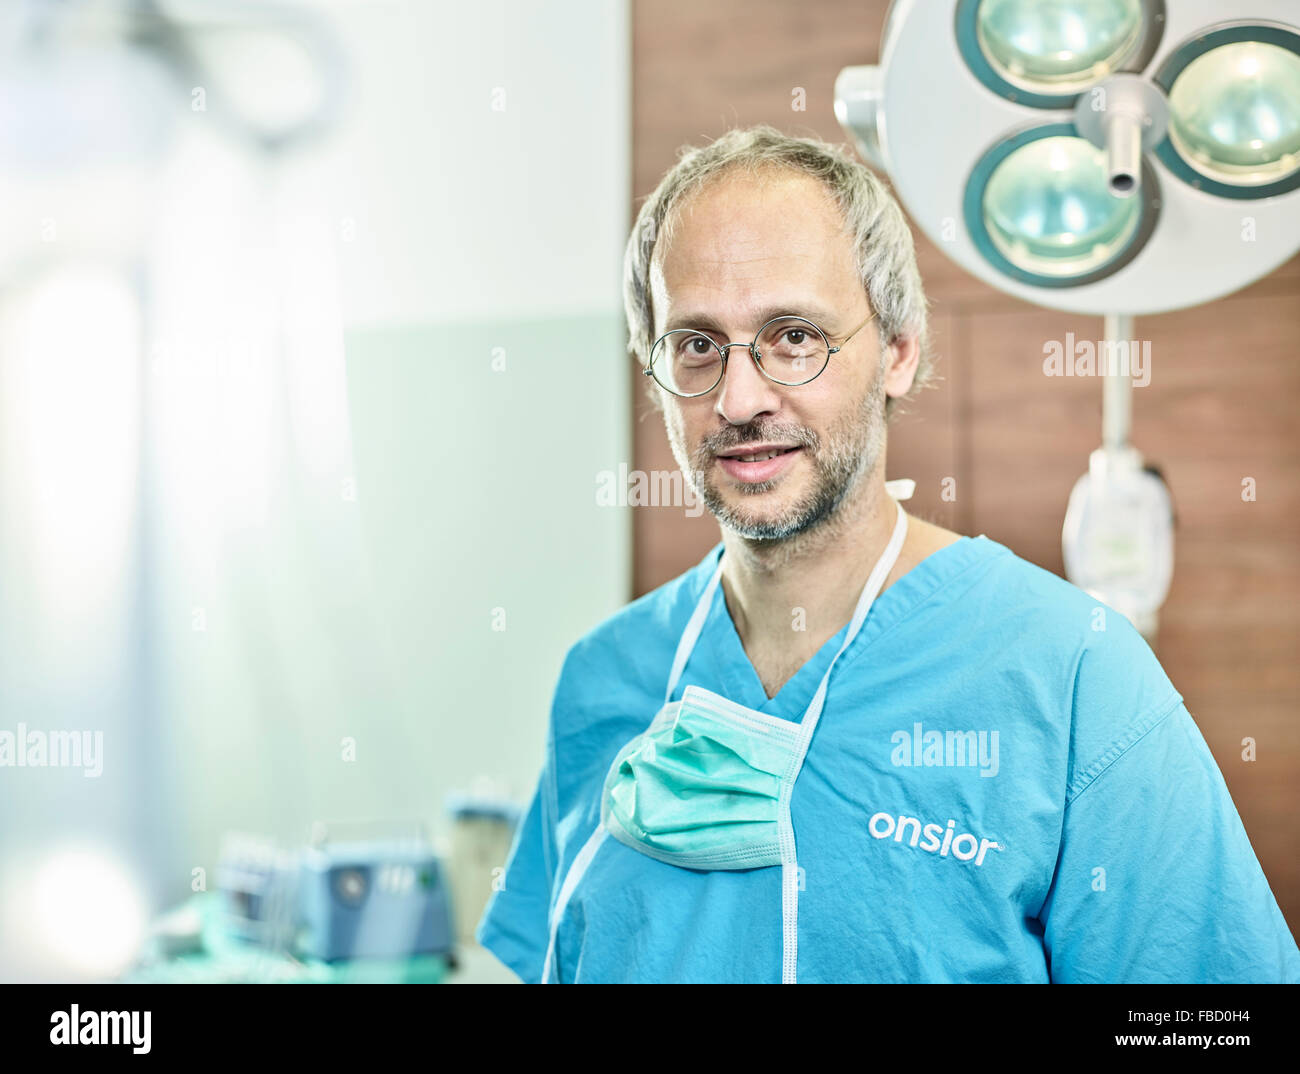 Vet, doctor in operating theatre with face mask around neck, Austria - Stock Image